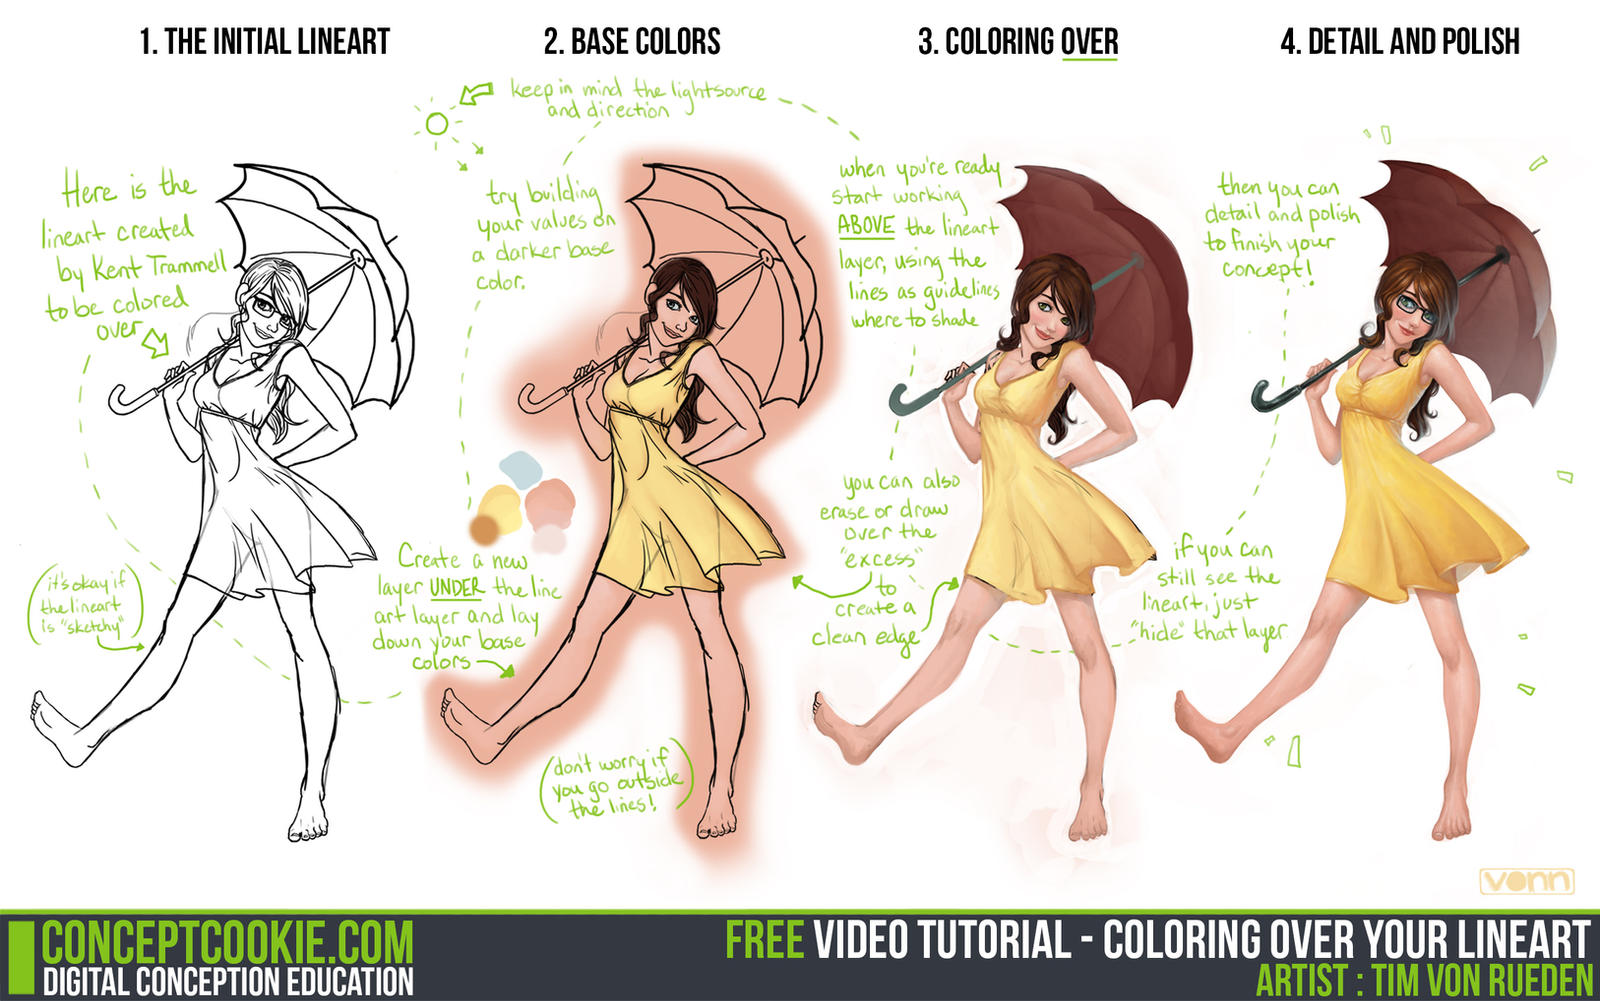 How to color your art in photoshop - Skullz Adopts 4 307 3 581 Tutorial Coloring Over Your Lineart By Cgcookie